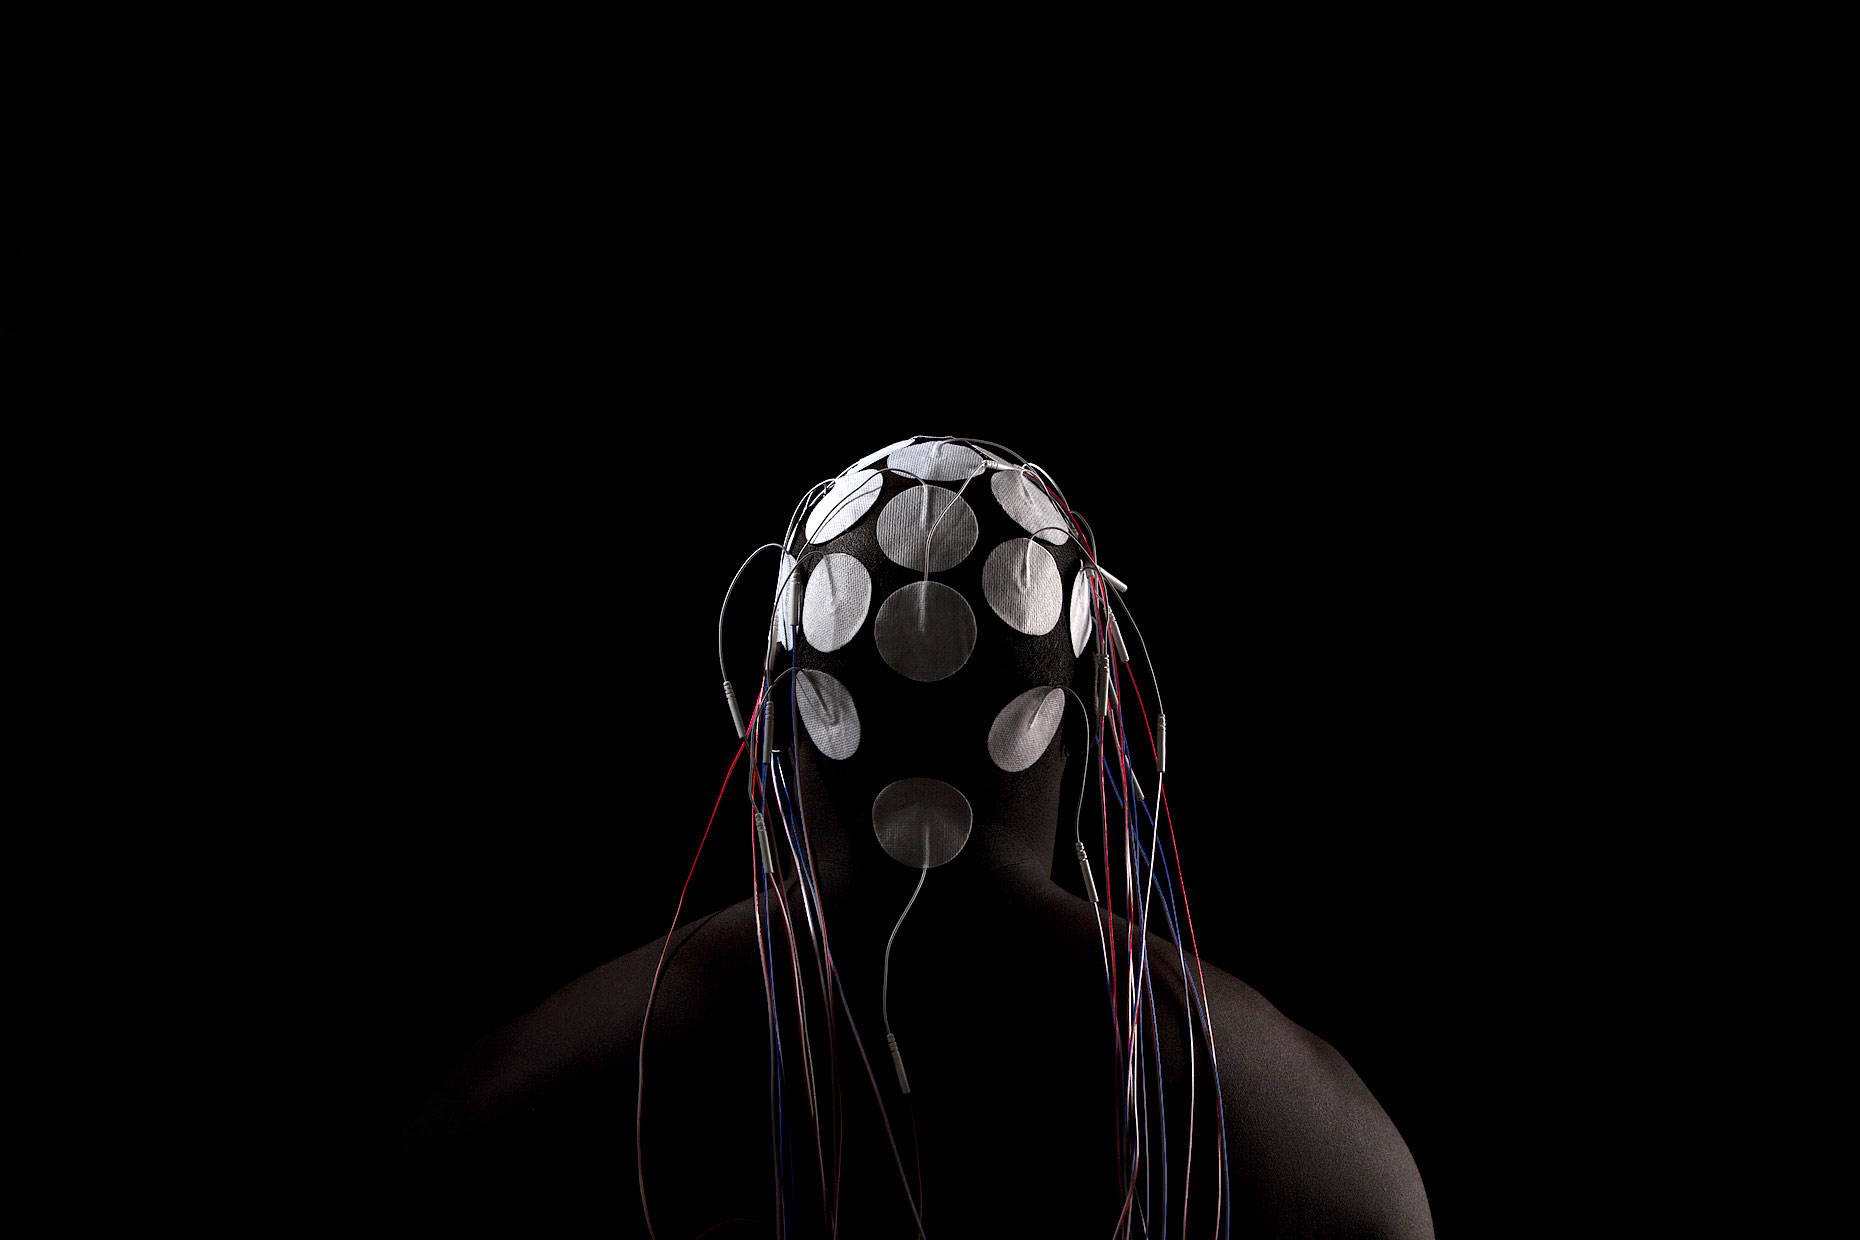 Electrodes on the back of the head of a bald, African American, male model with dark background | Scott Gable industrial photographer